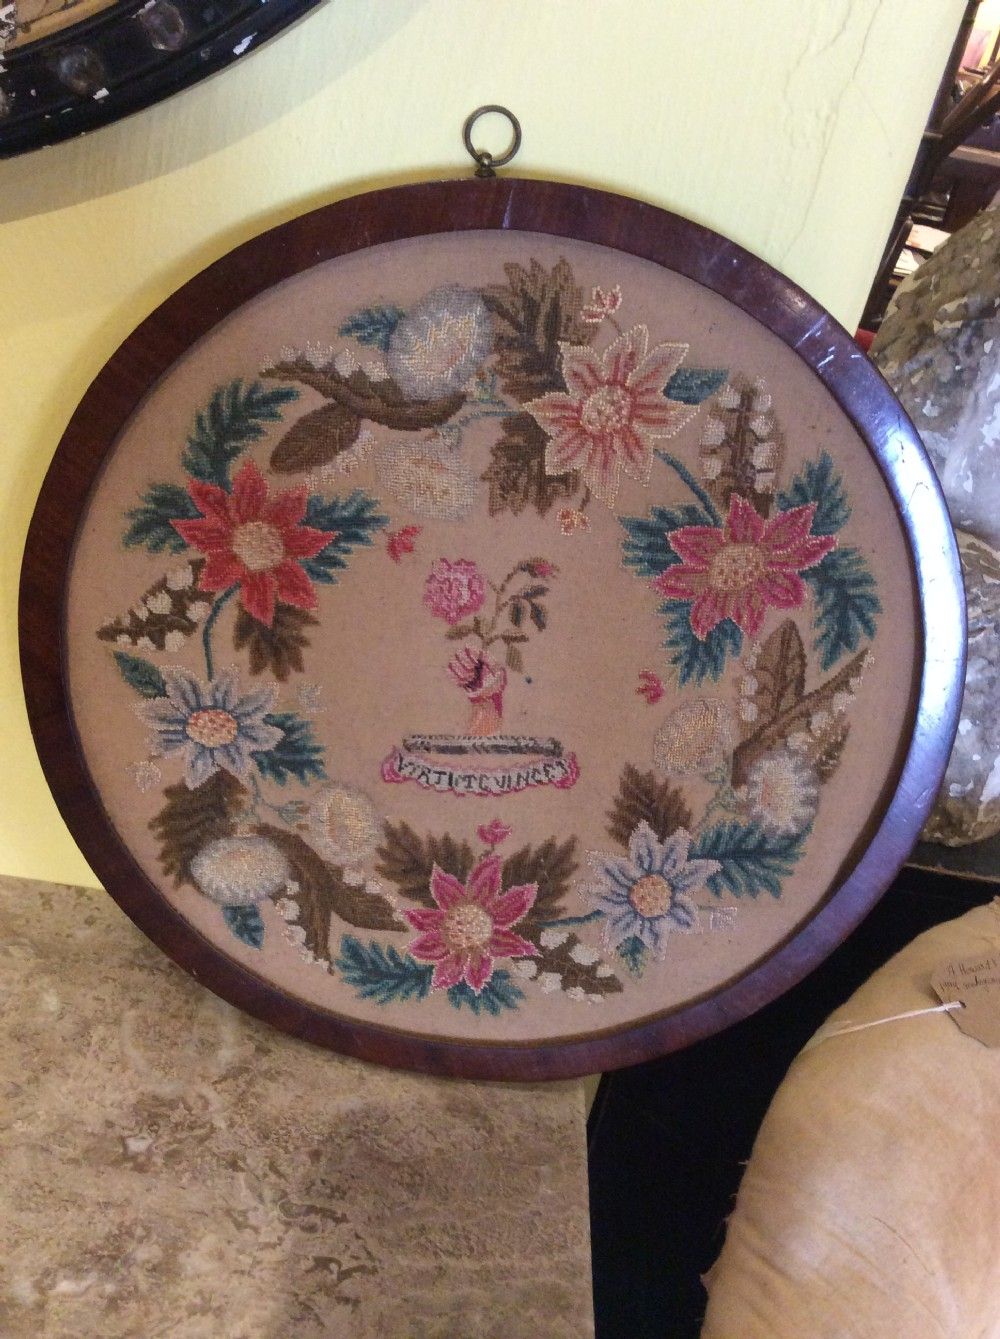 19thc mahogany circular frame with petit point tapestry of floral design